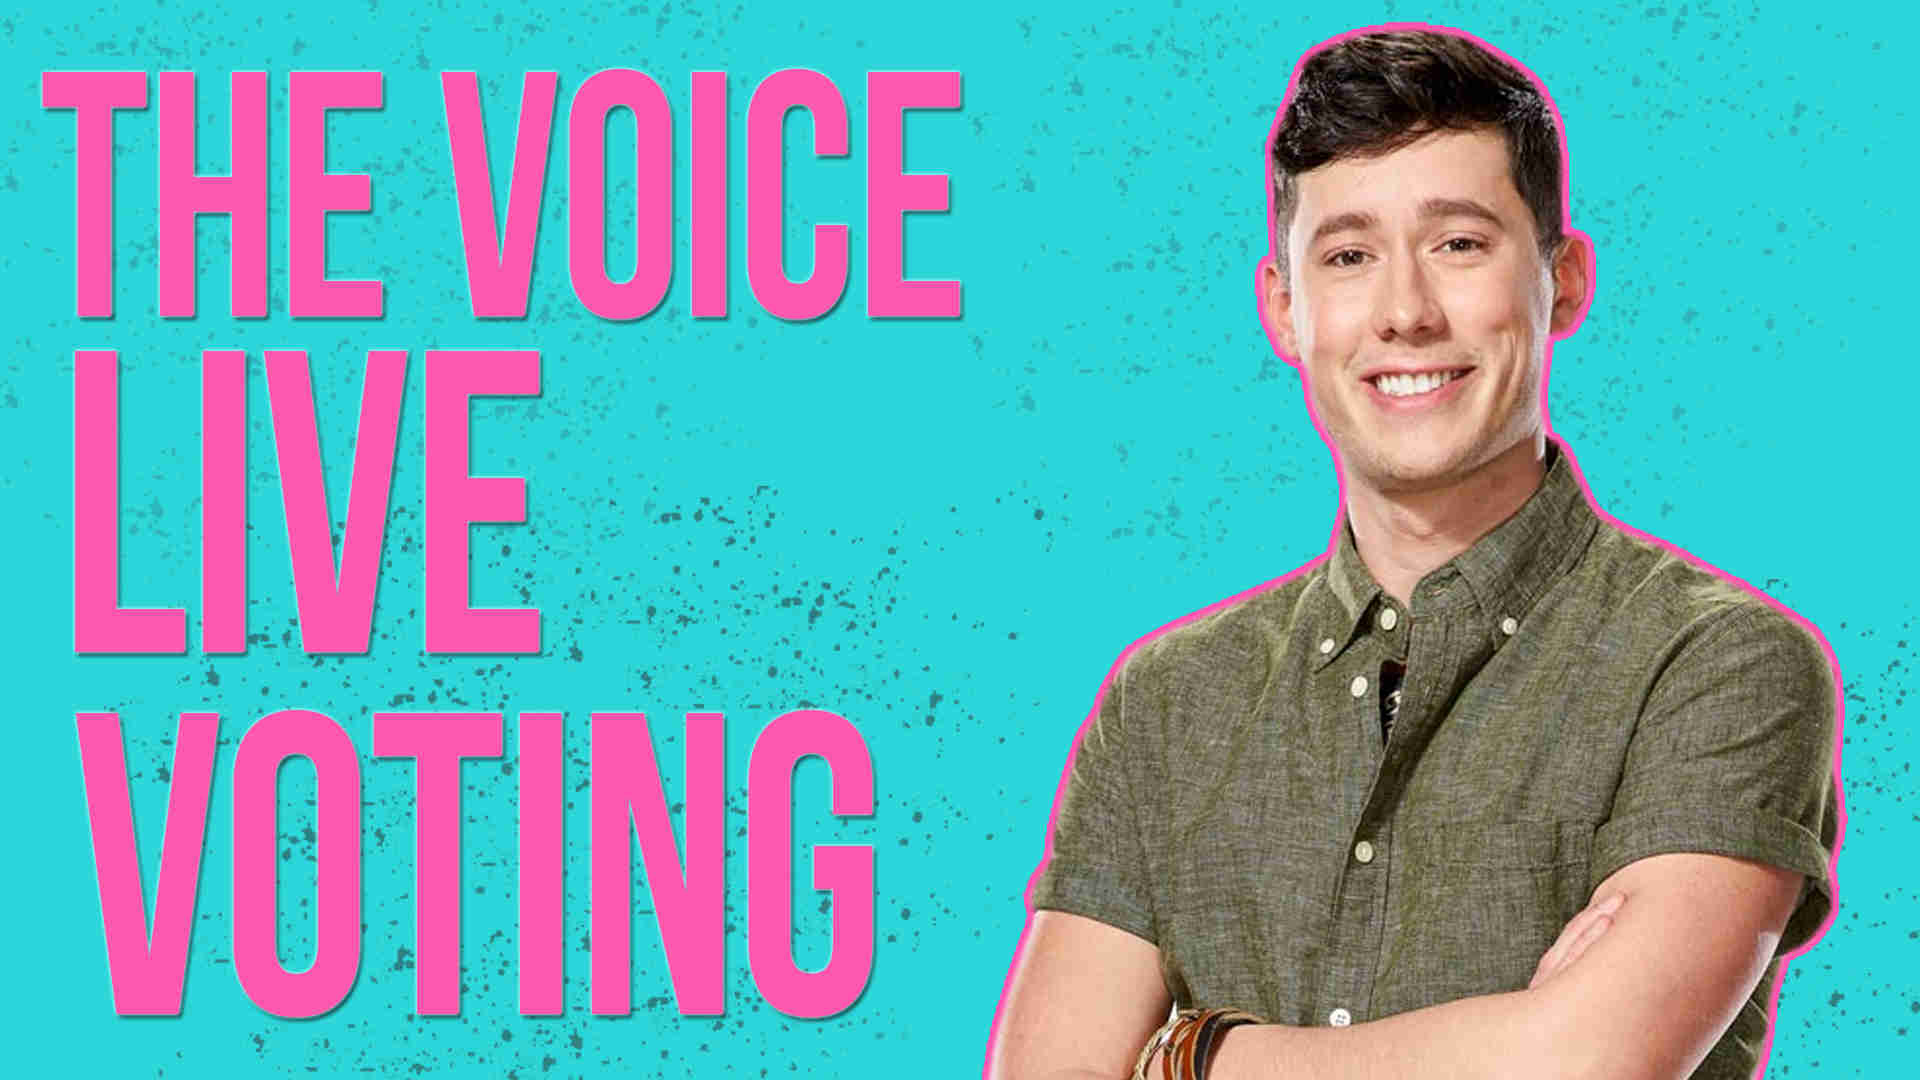 Vote Micah Iverson The Voice USA 2020 Top 17 Playoffs Voting Tonight on 4 May 2020